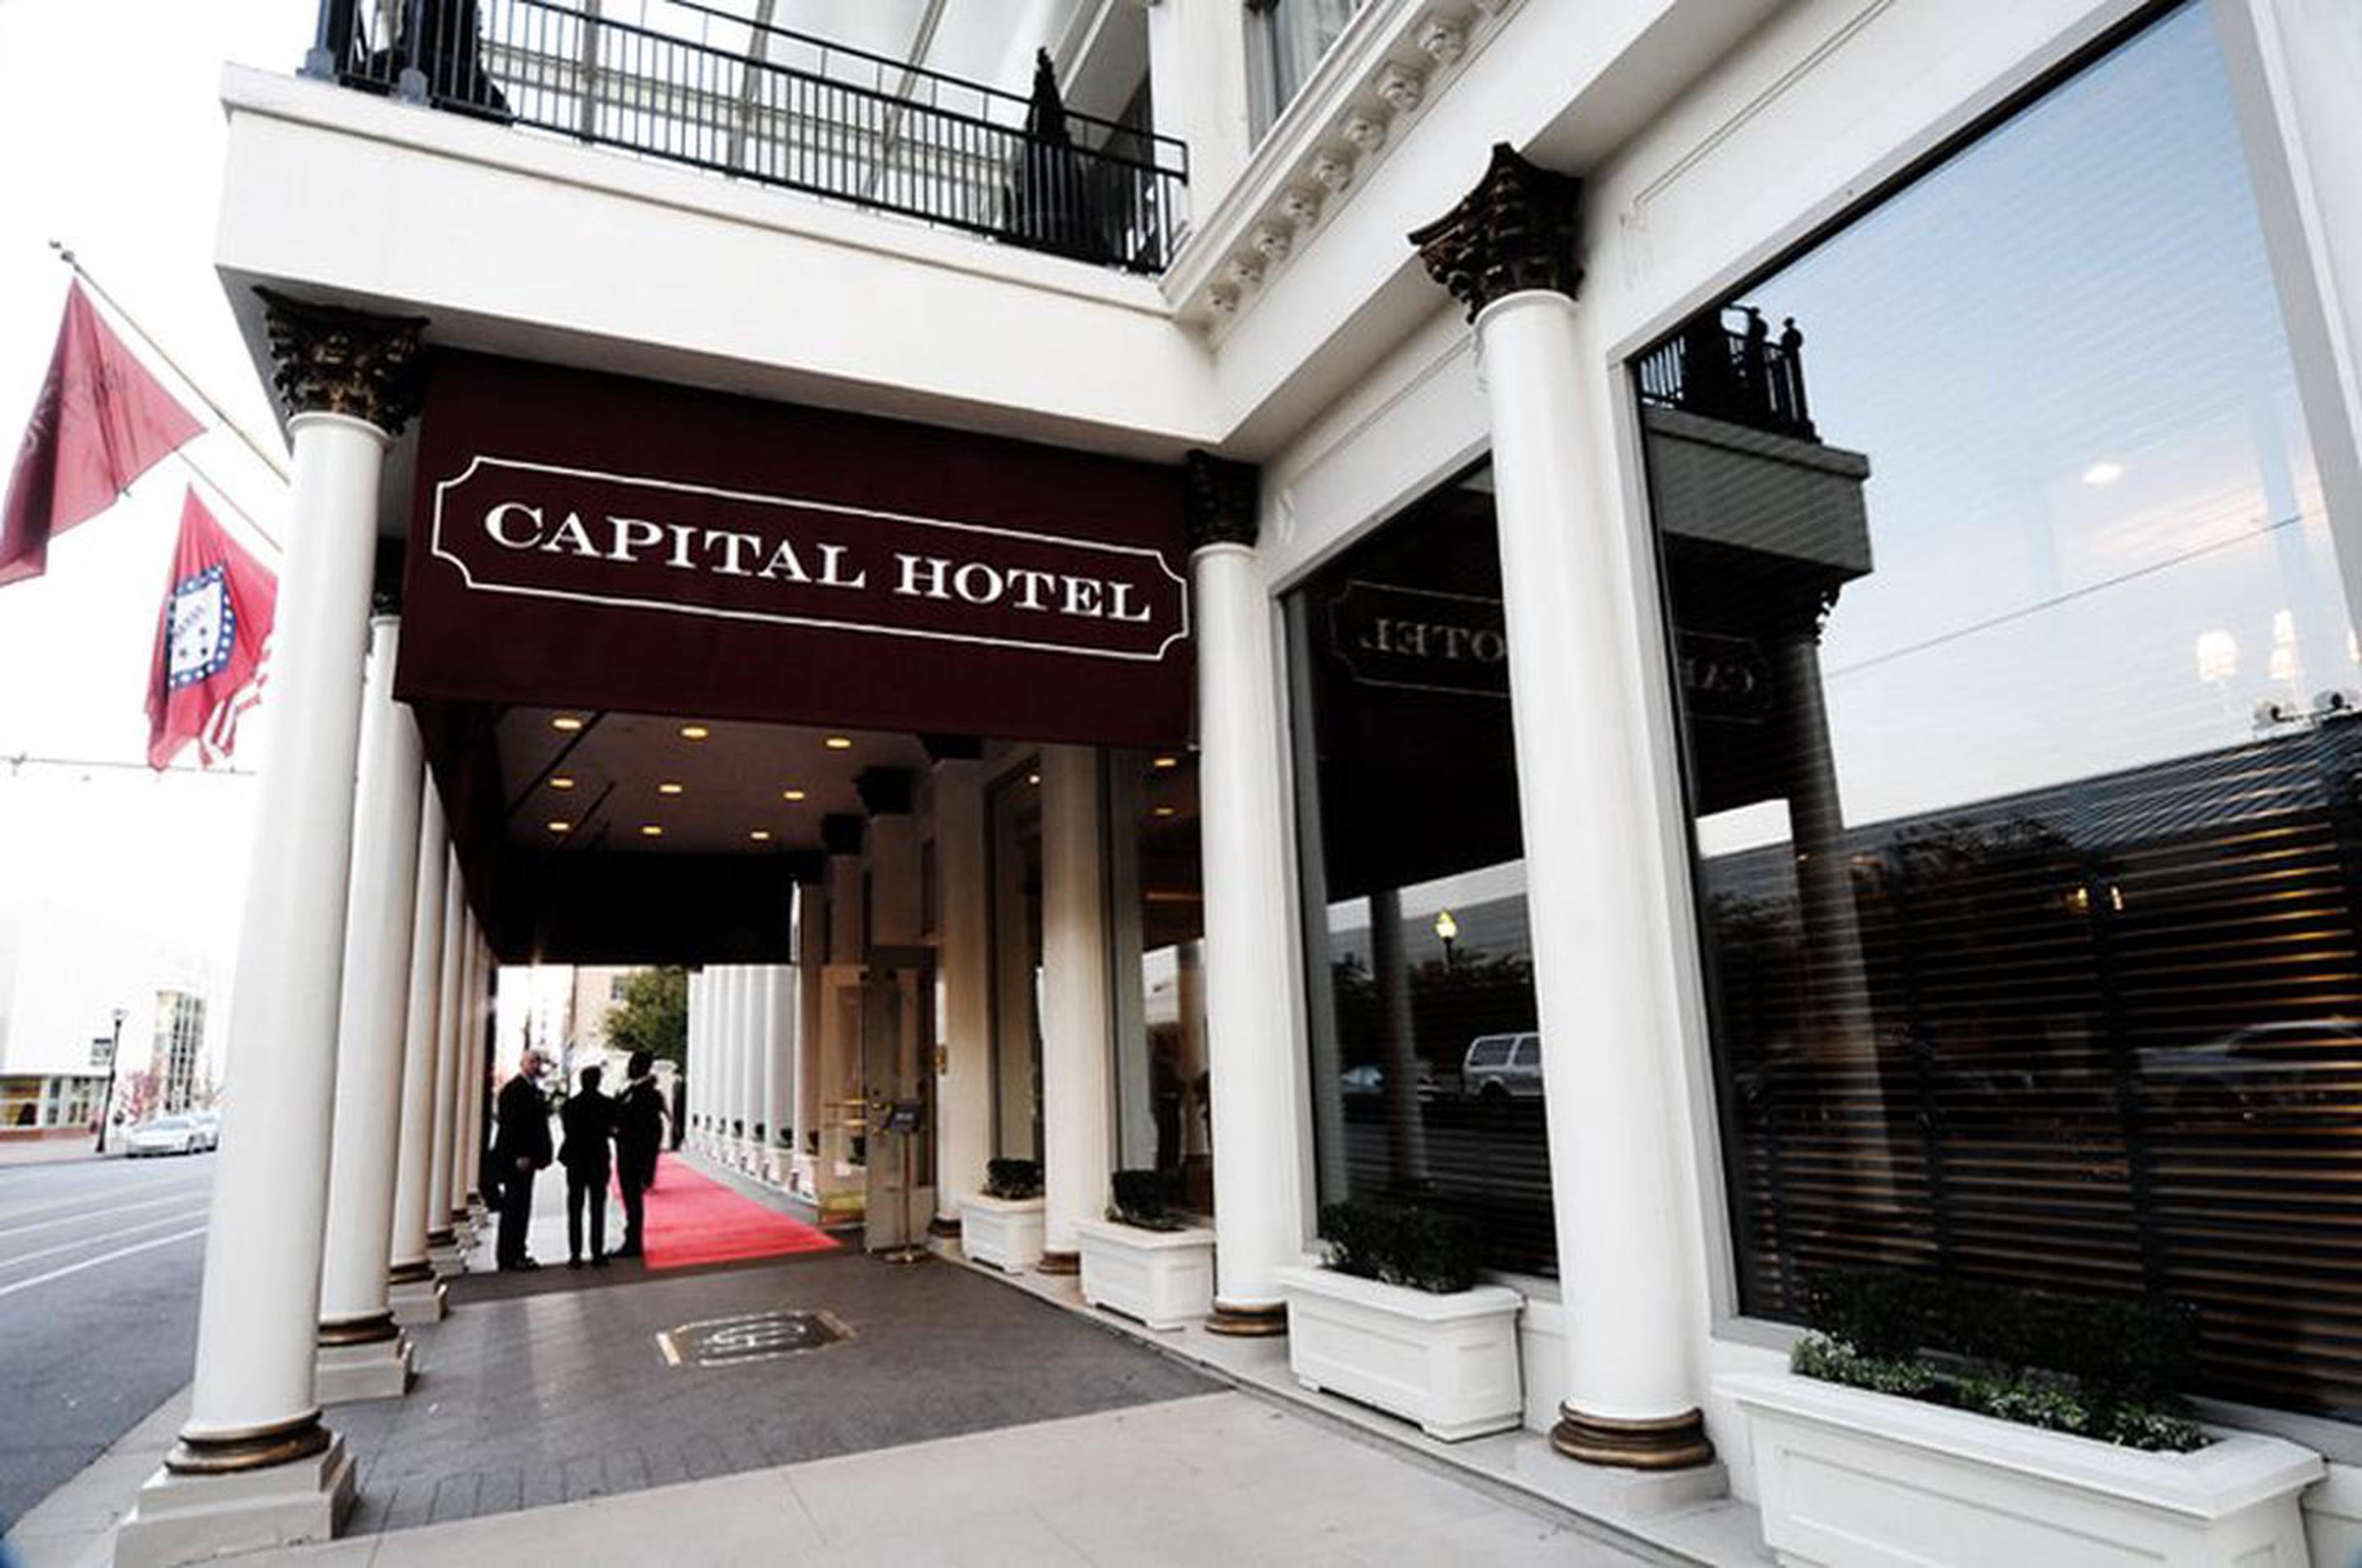 Capital HotelThe landmark hotel in Little Rock hosted many political and historic personages, including President Ulysses S. Grant. In fact, legend says that the Capital's unusually large elevator was built to allow Grant to take his horse to his hotel room.